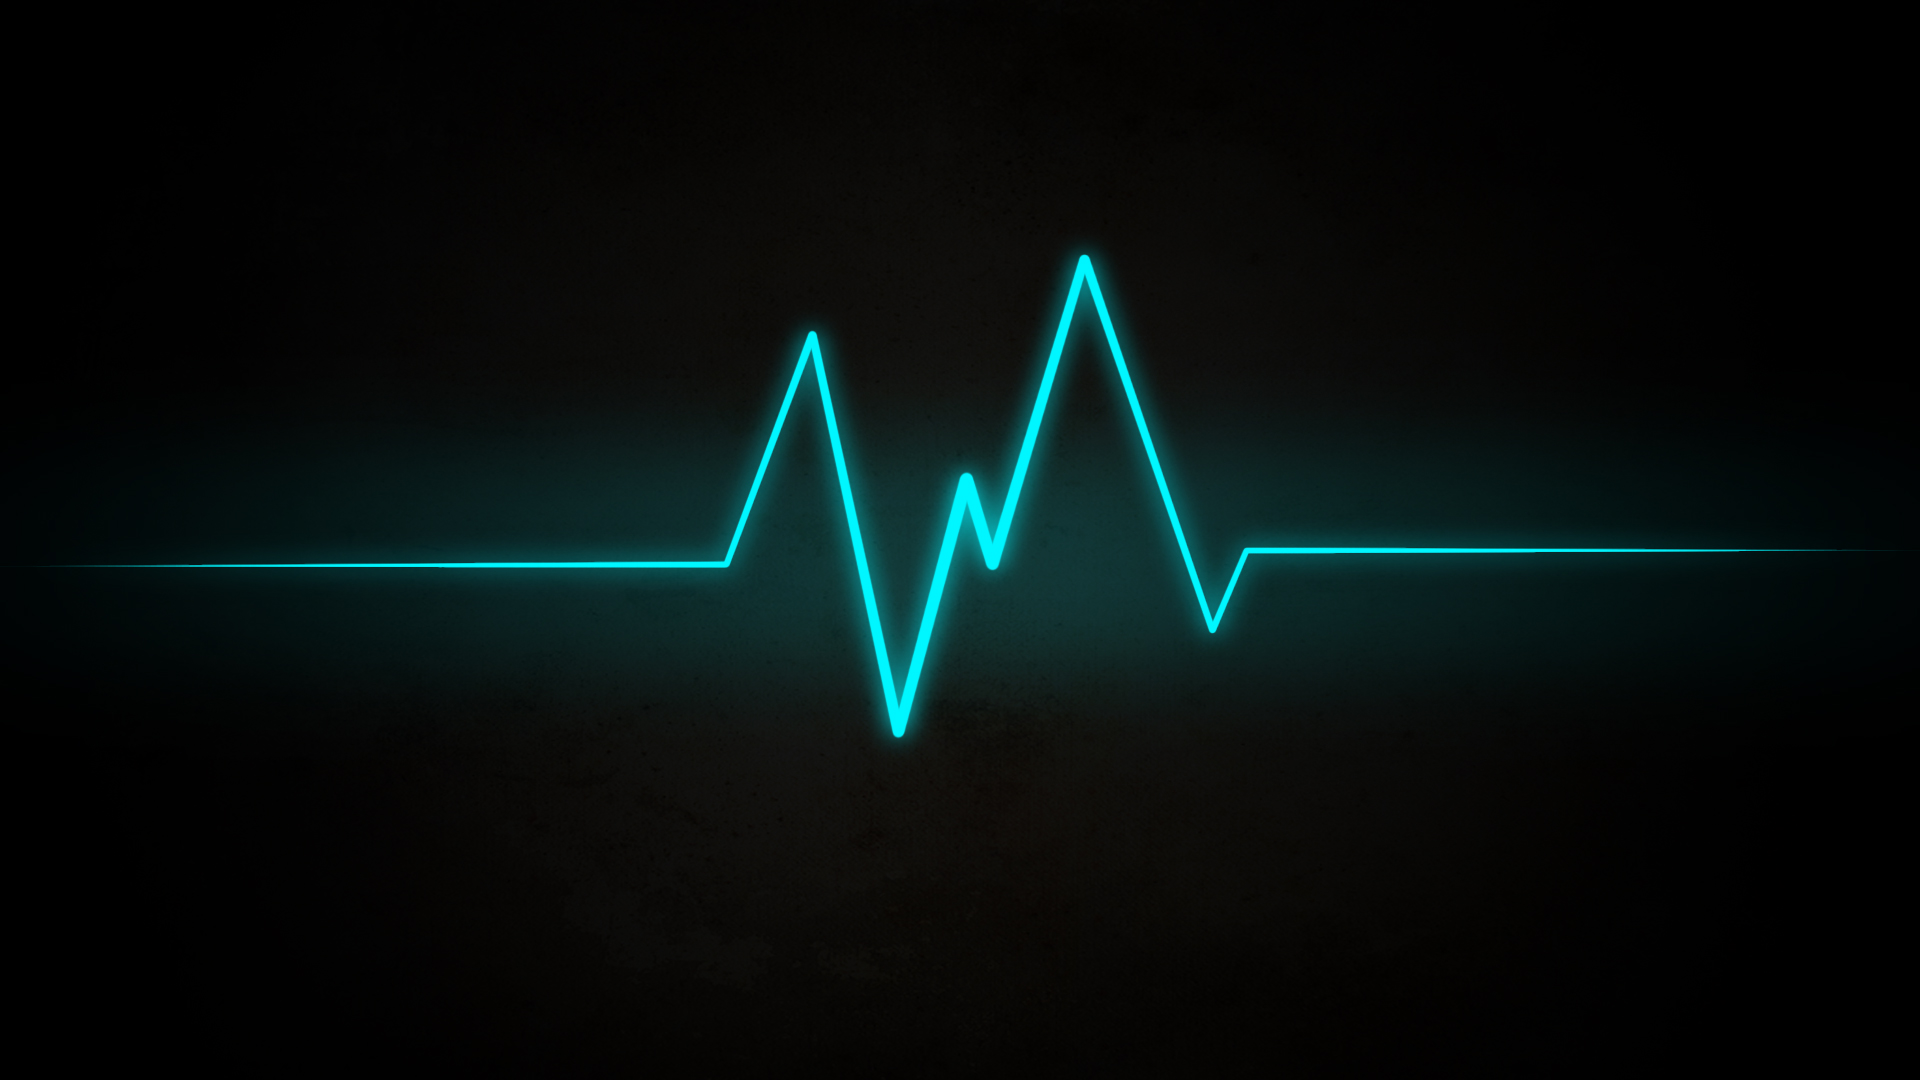 Heartbeat wave wallpaper   222193 1920x1080